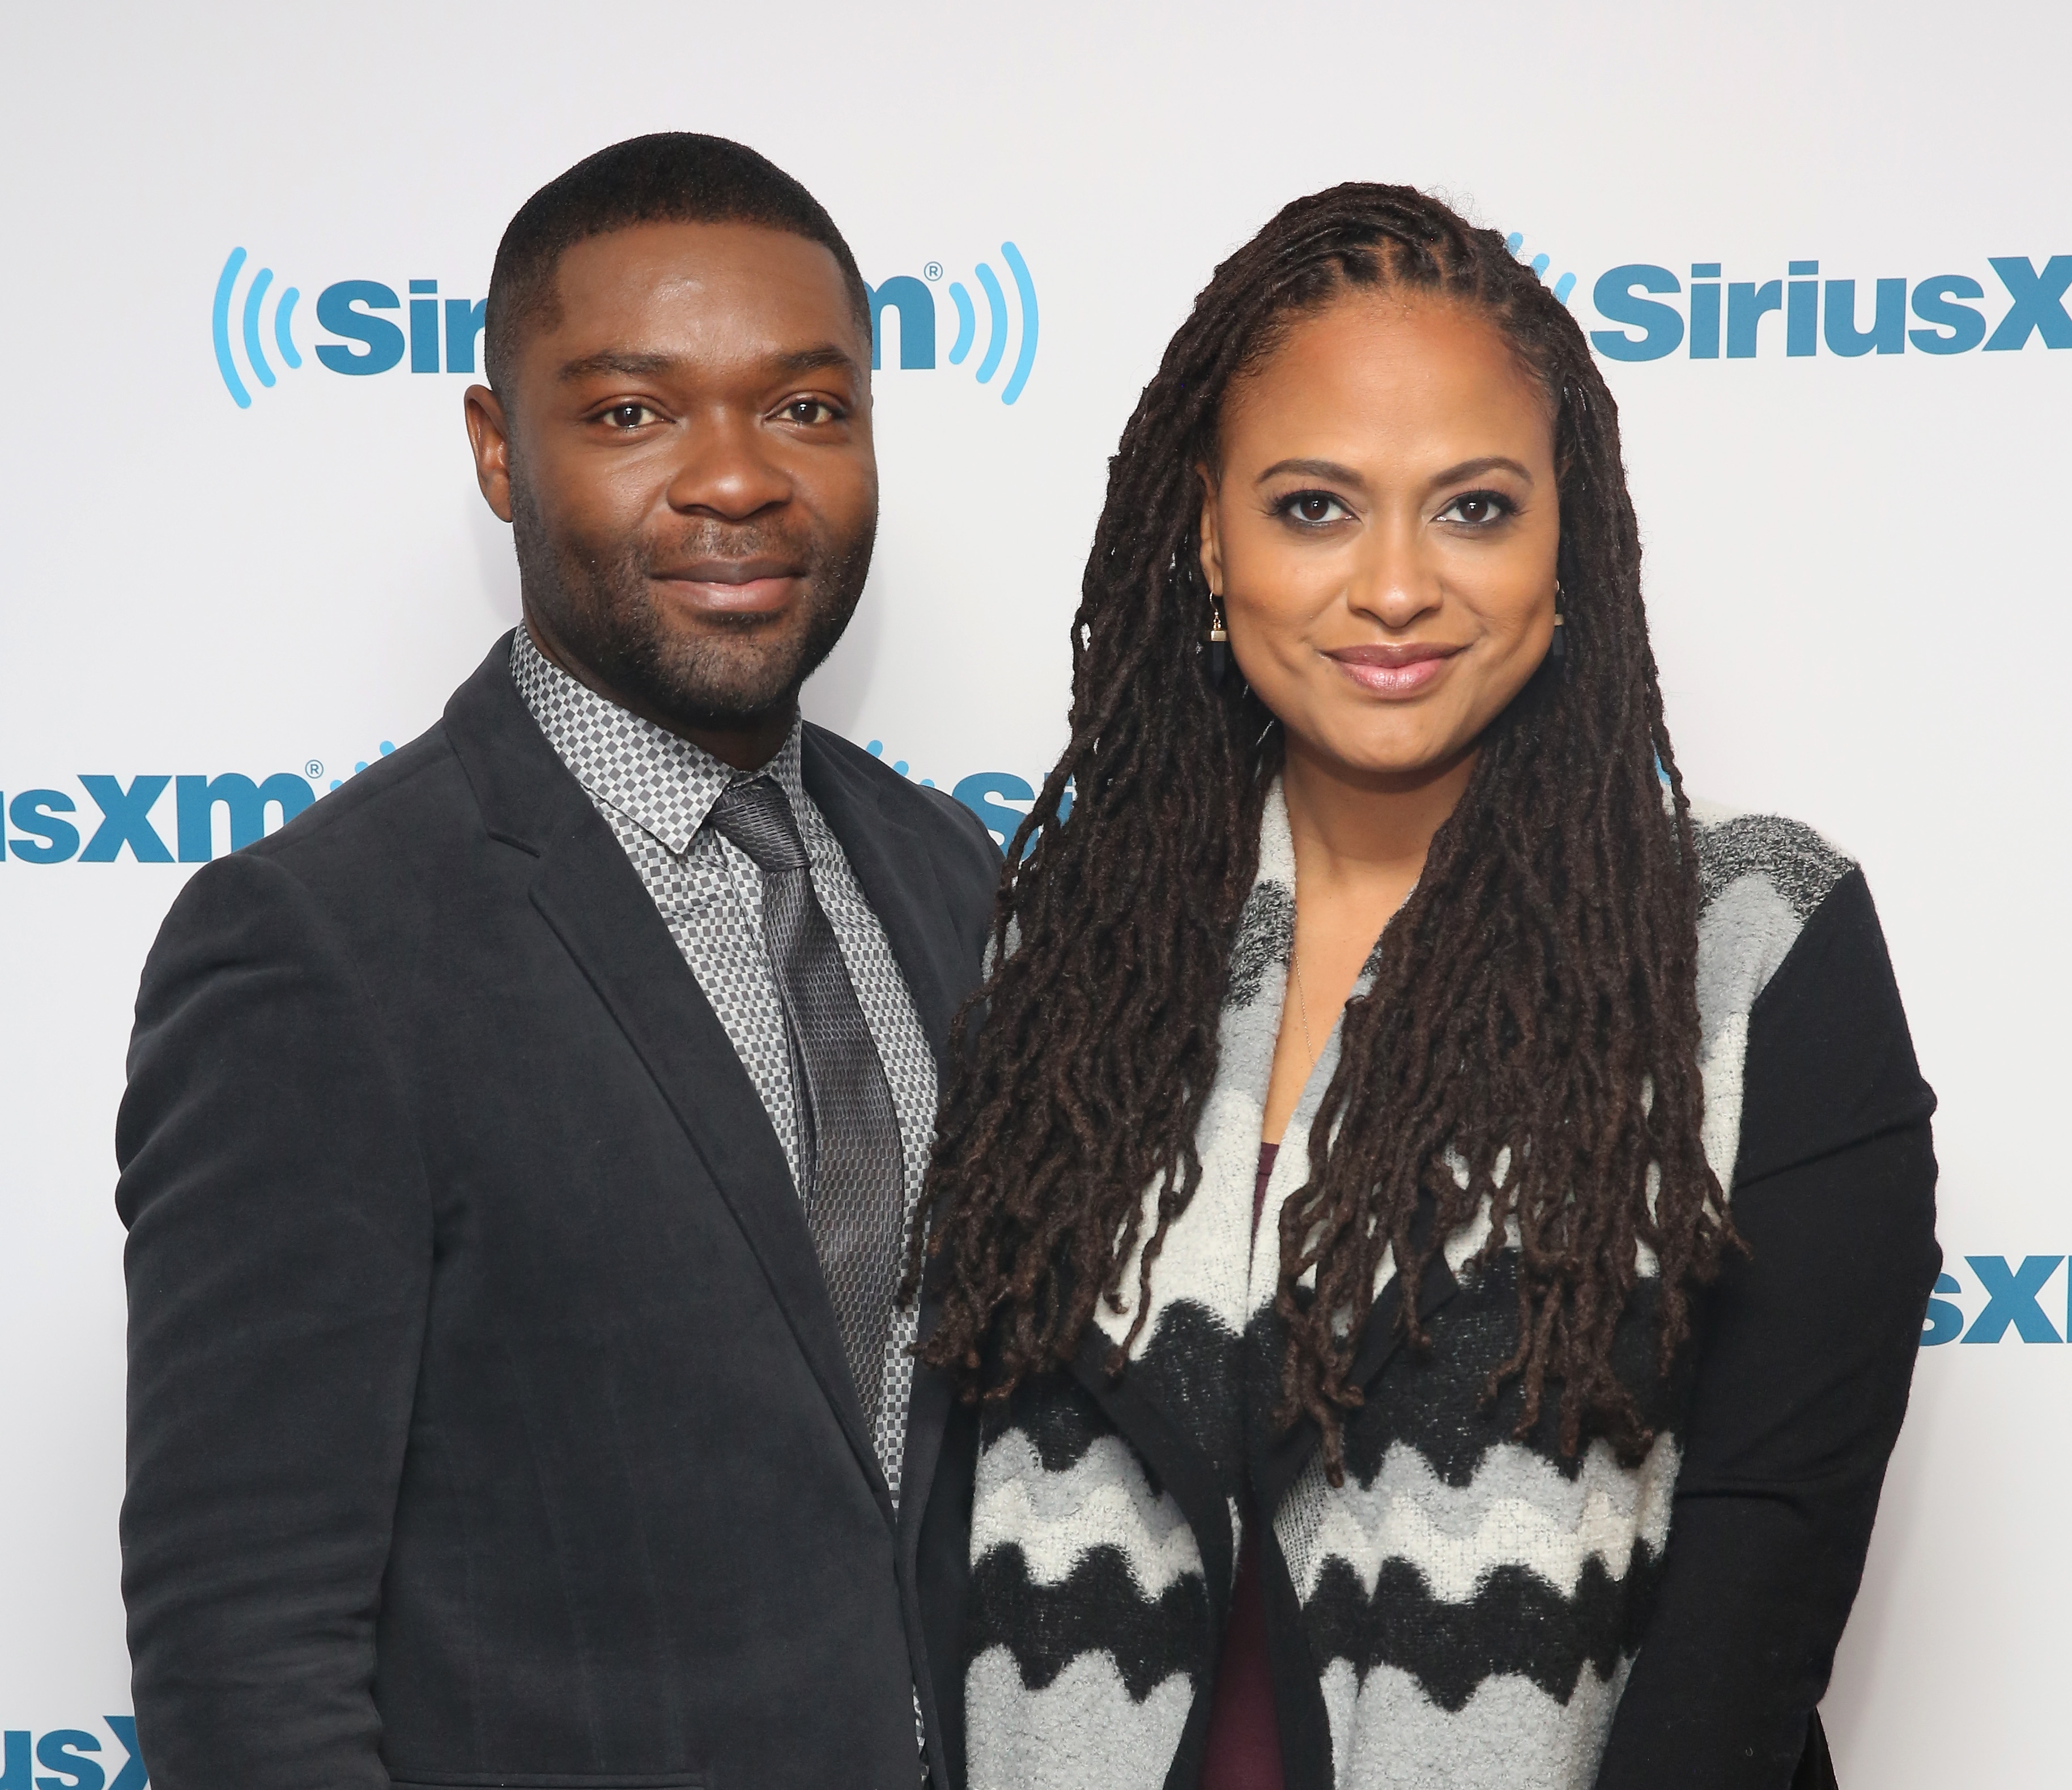 David Oyelowo and Ava DuVernay visit The SiriusXM Studios For  Selma: An Urban View Special  on Jan. 6 in New York City.